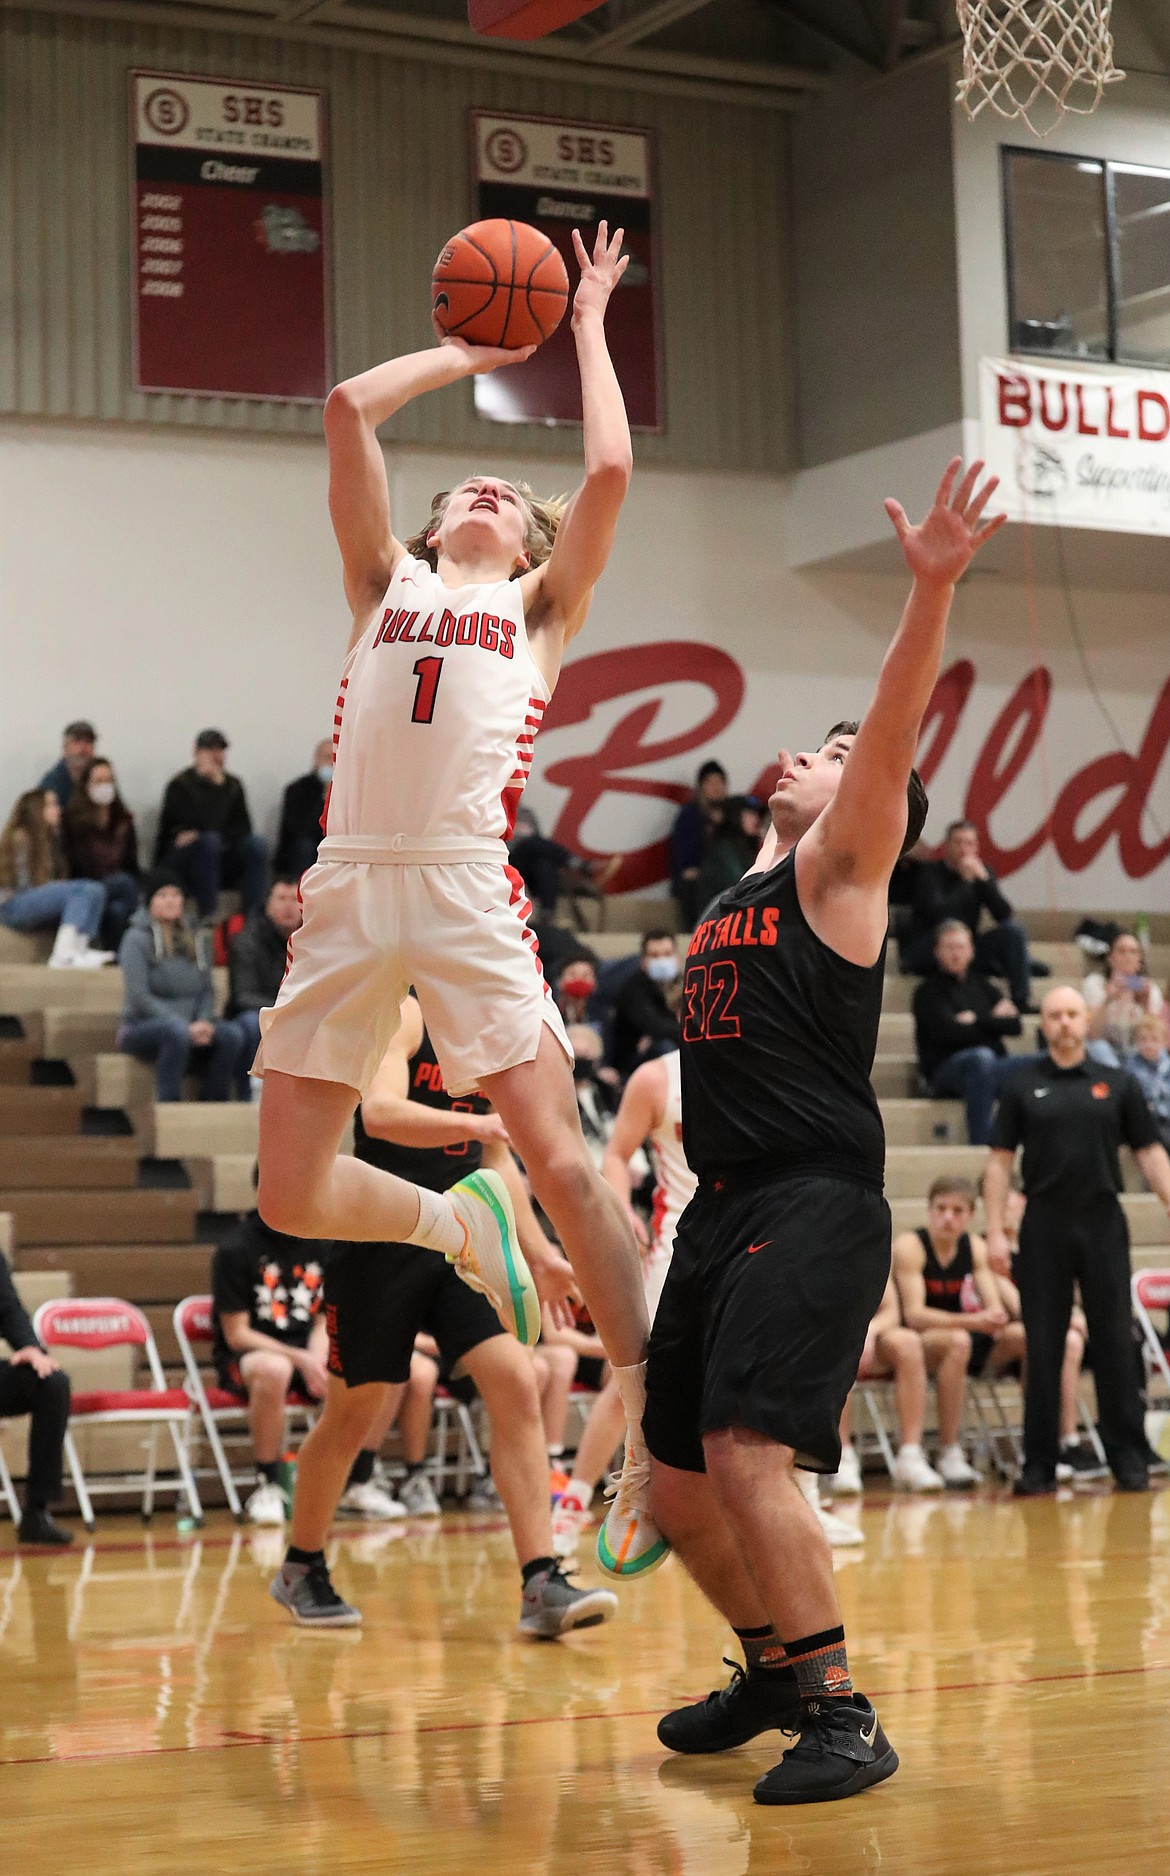 Colin Roos elevates for a layup on Wednesday.